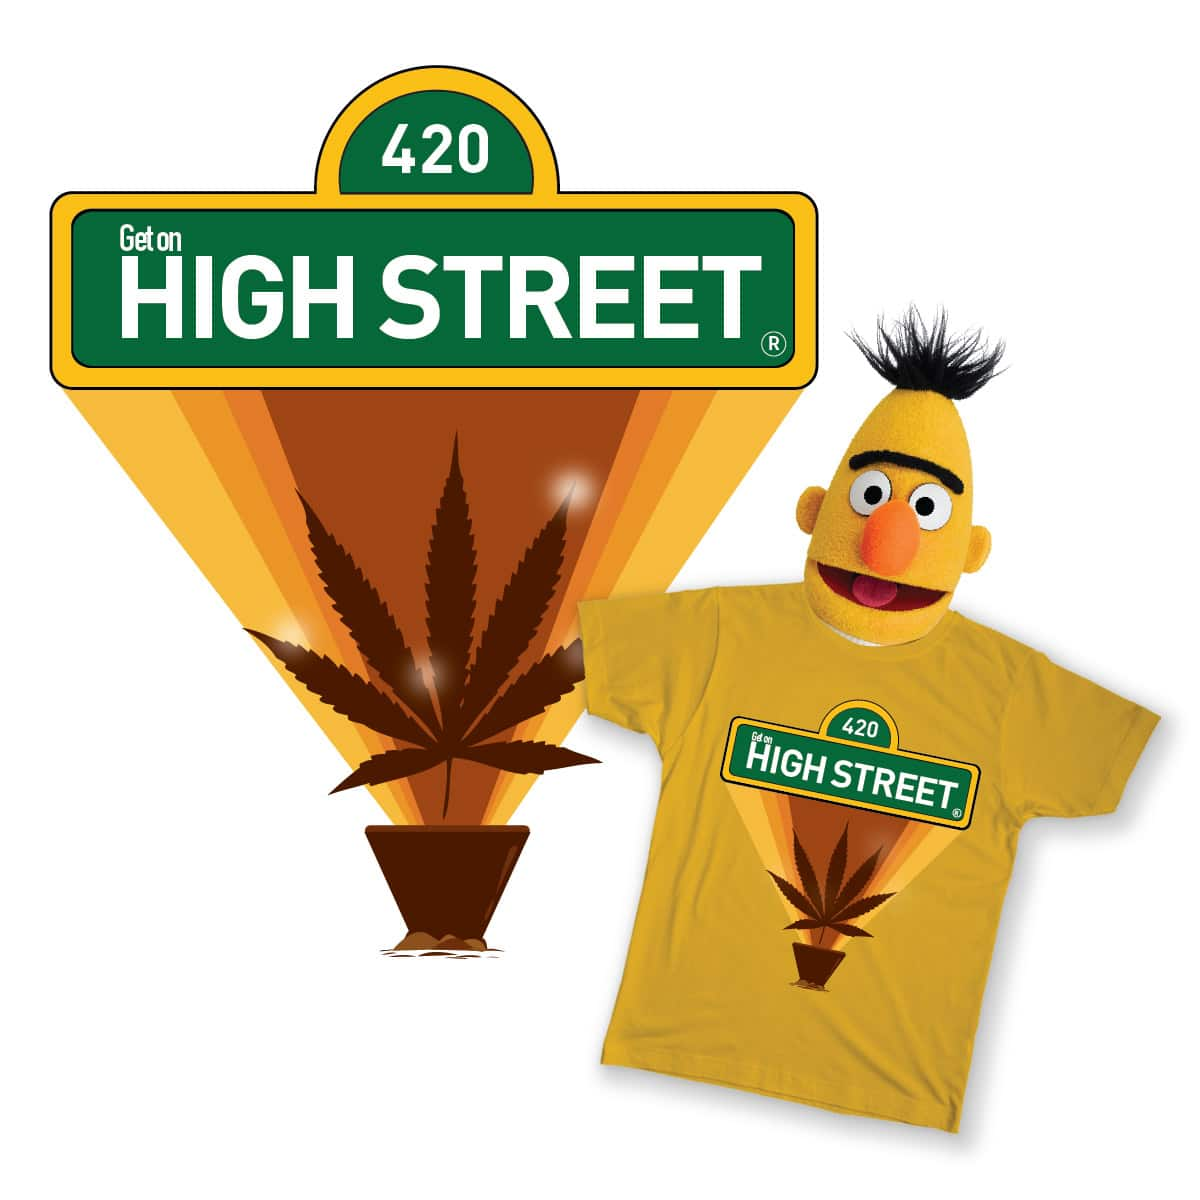 HIGH-STREET 420 PARODY by ctrlartdelete on Threadless